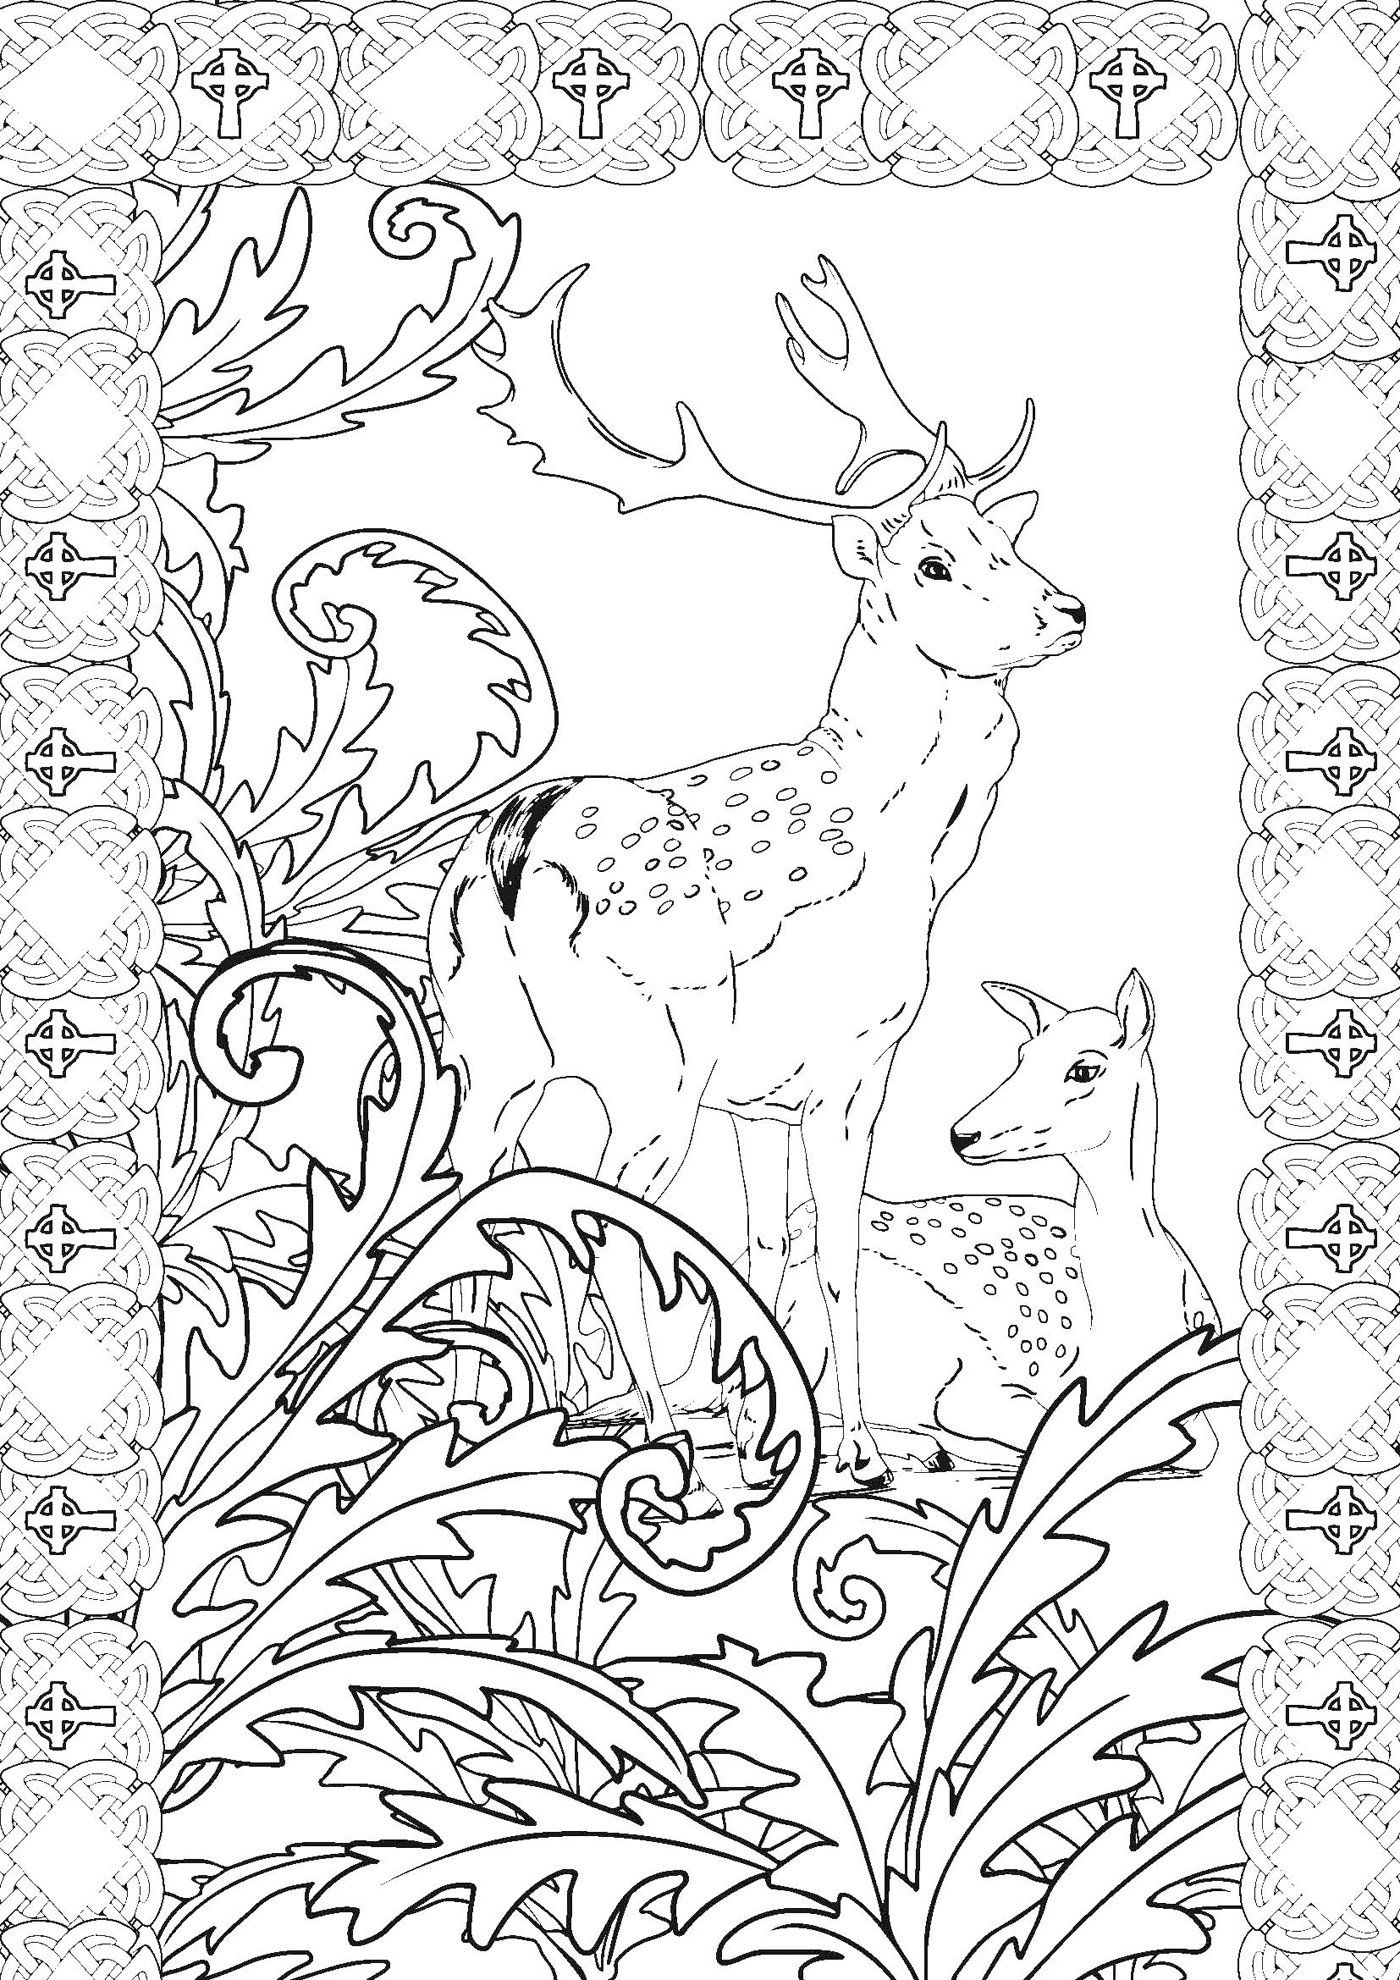 Coloriage Animaux Feeriques.Amazon Fr Forets Feeriques 100 Coloriages Anti Stress